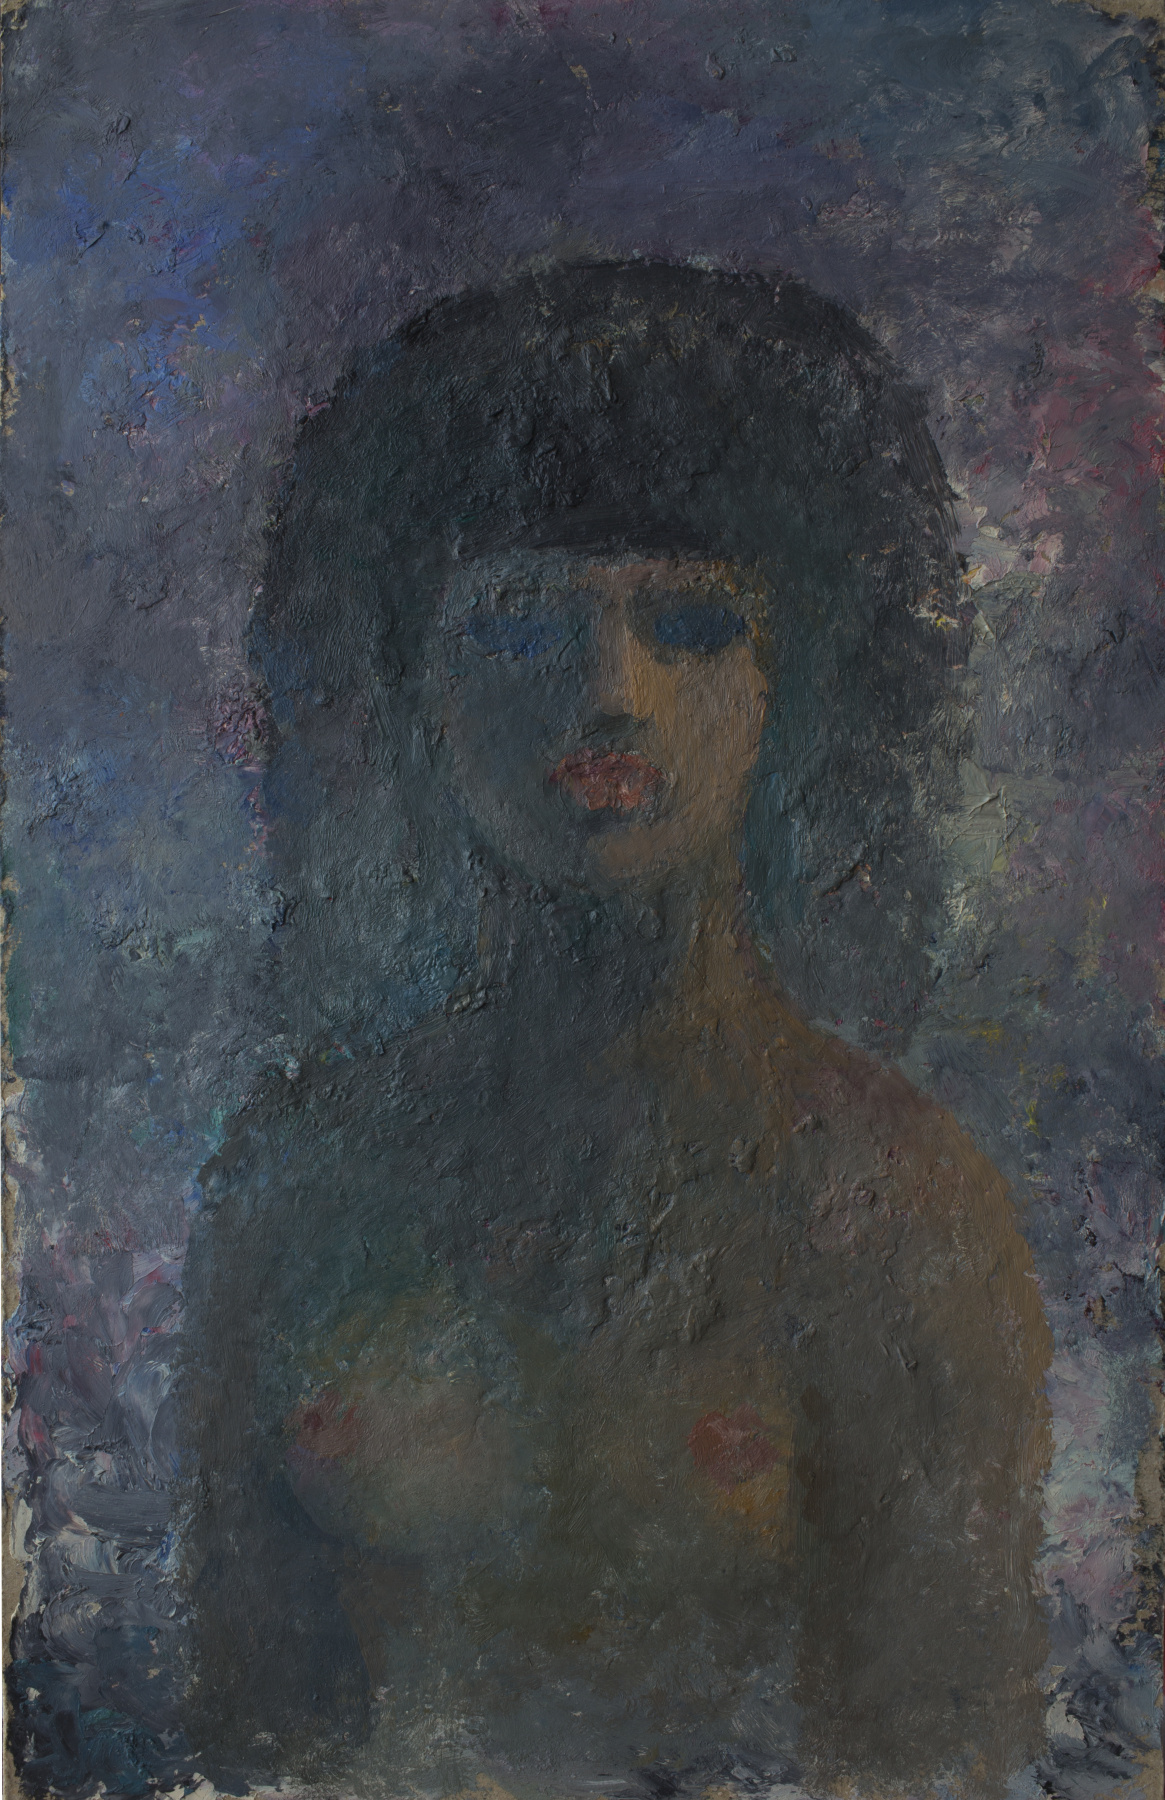 Anatoly Vasilievich Smagin. Portrait of a stranger